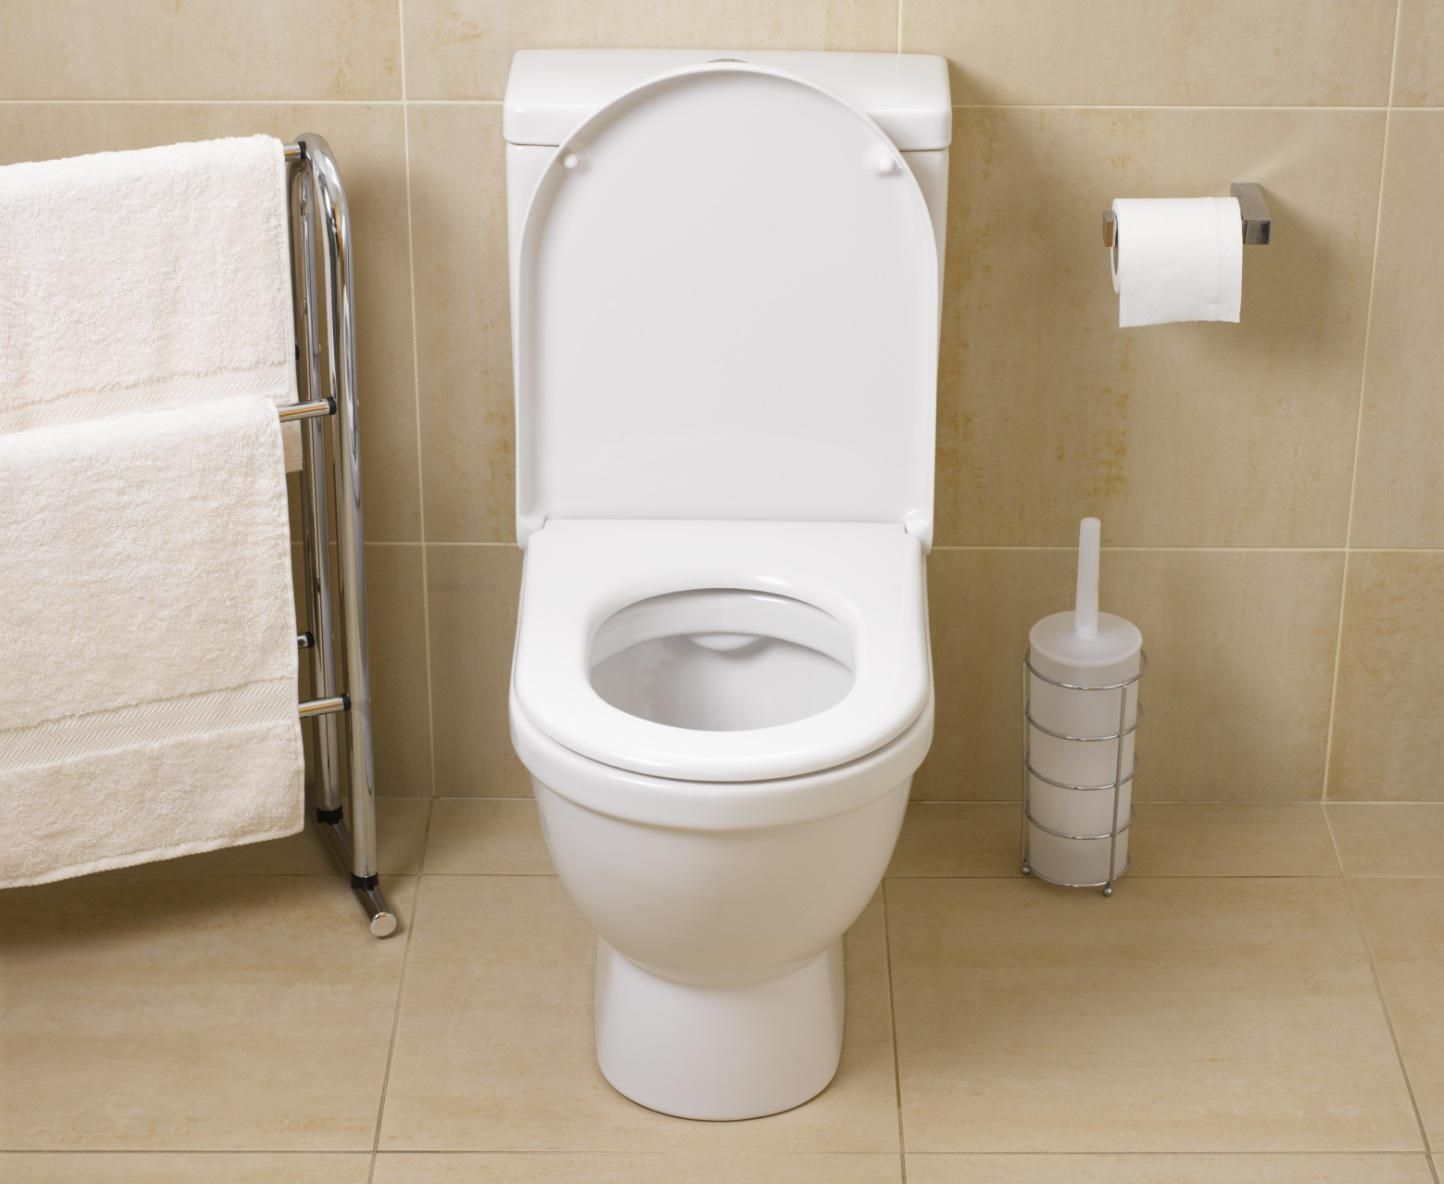 How to Repair Common Toilet Problems | Clogged toilet, Toilet and Clogs